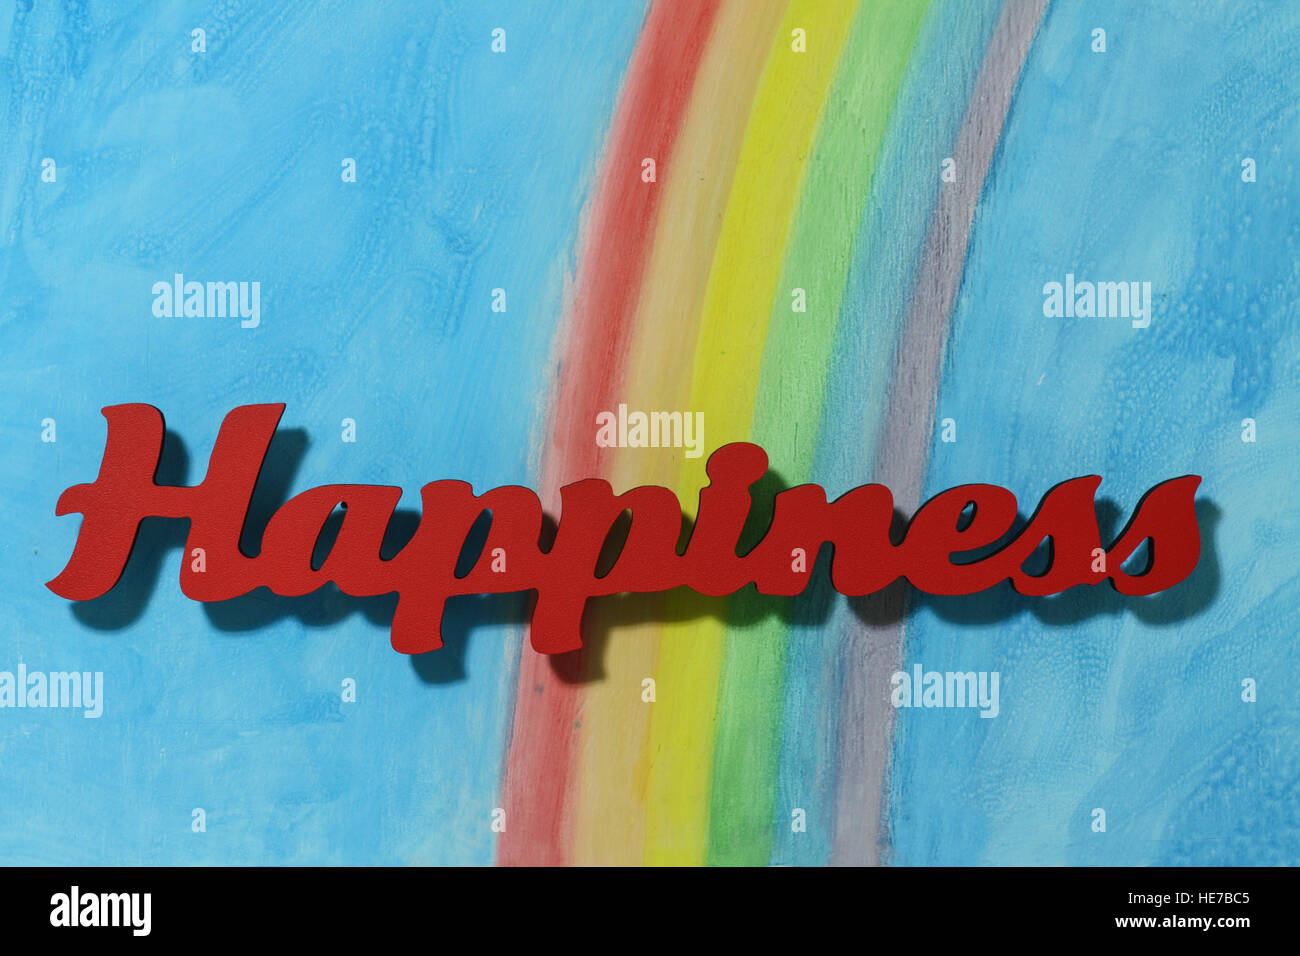 Red letters spelling the word happiness to illustrate the concept of joy, happy, love and wellness; close up. Stock Photo